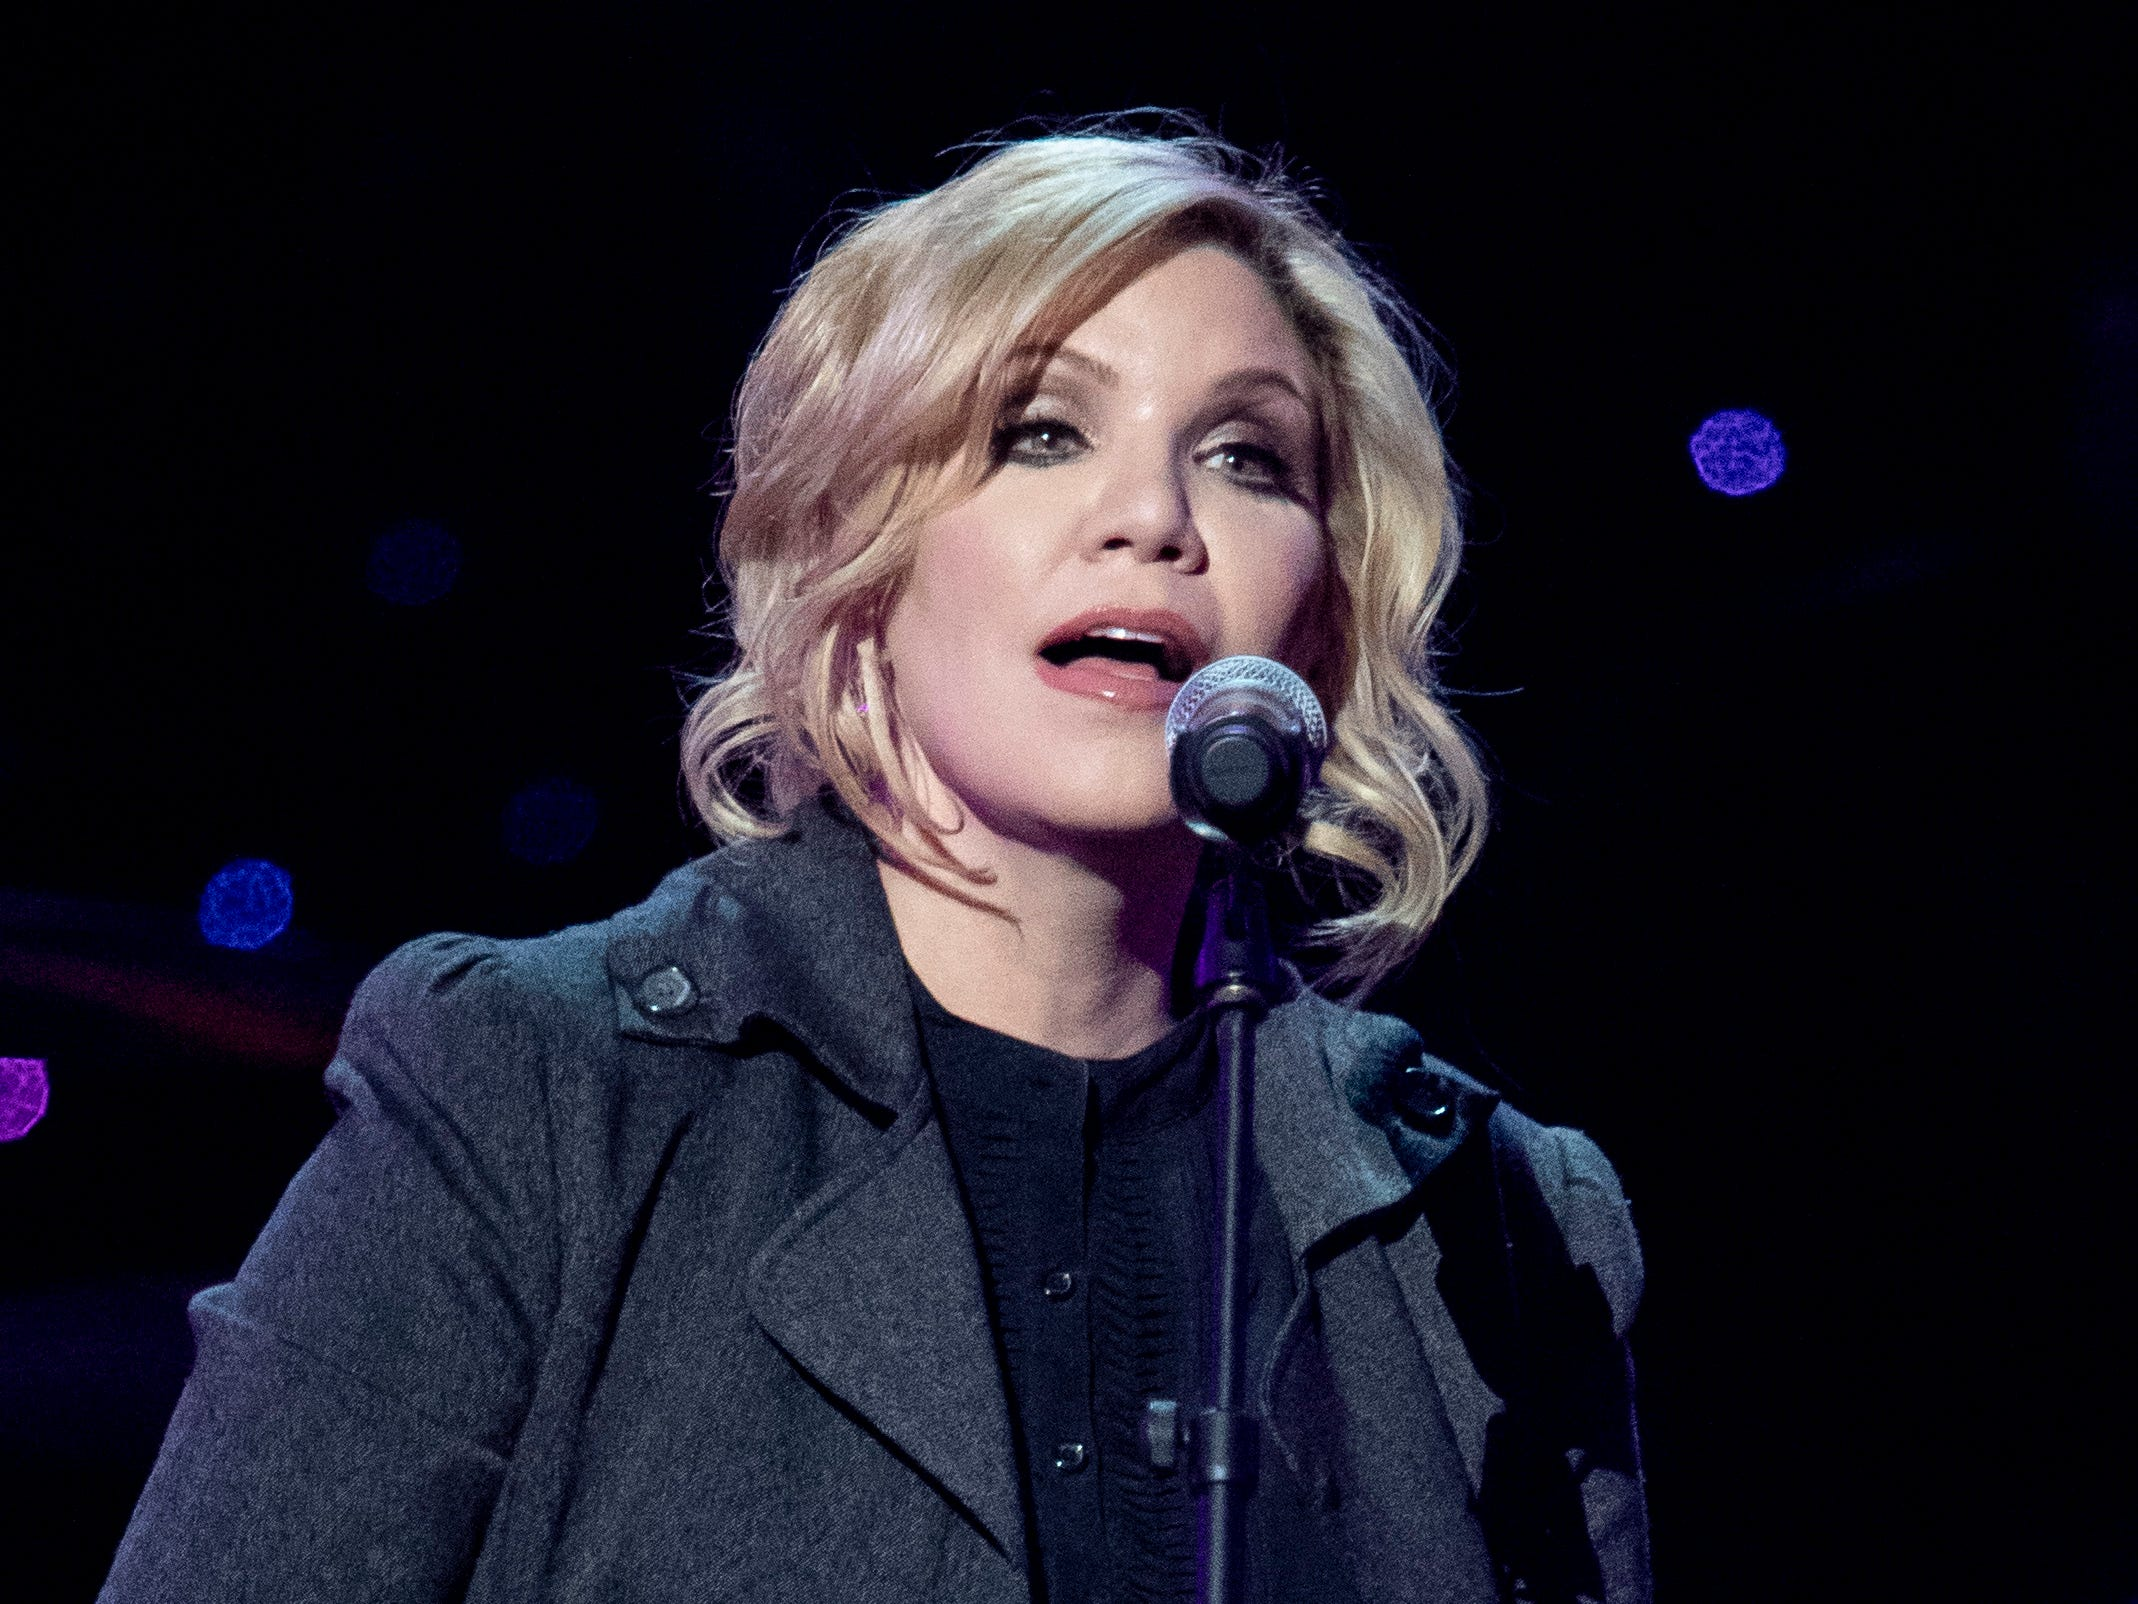 Alison Krauss performs during the Willie: Life & Songs of an American Outlaw concert at Bridgestone Arena in Nashville, Tenn., Saturday, Jan. 12, 2019.